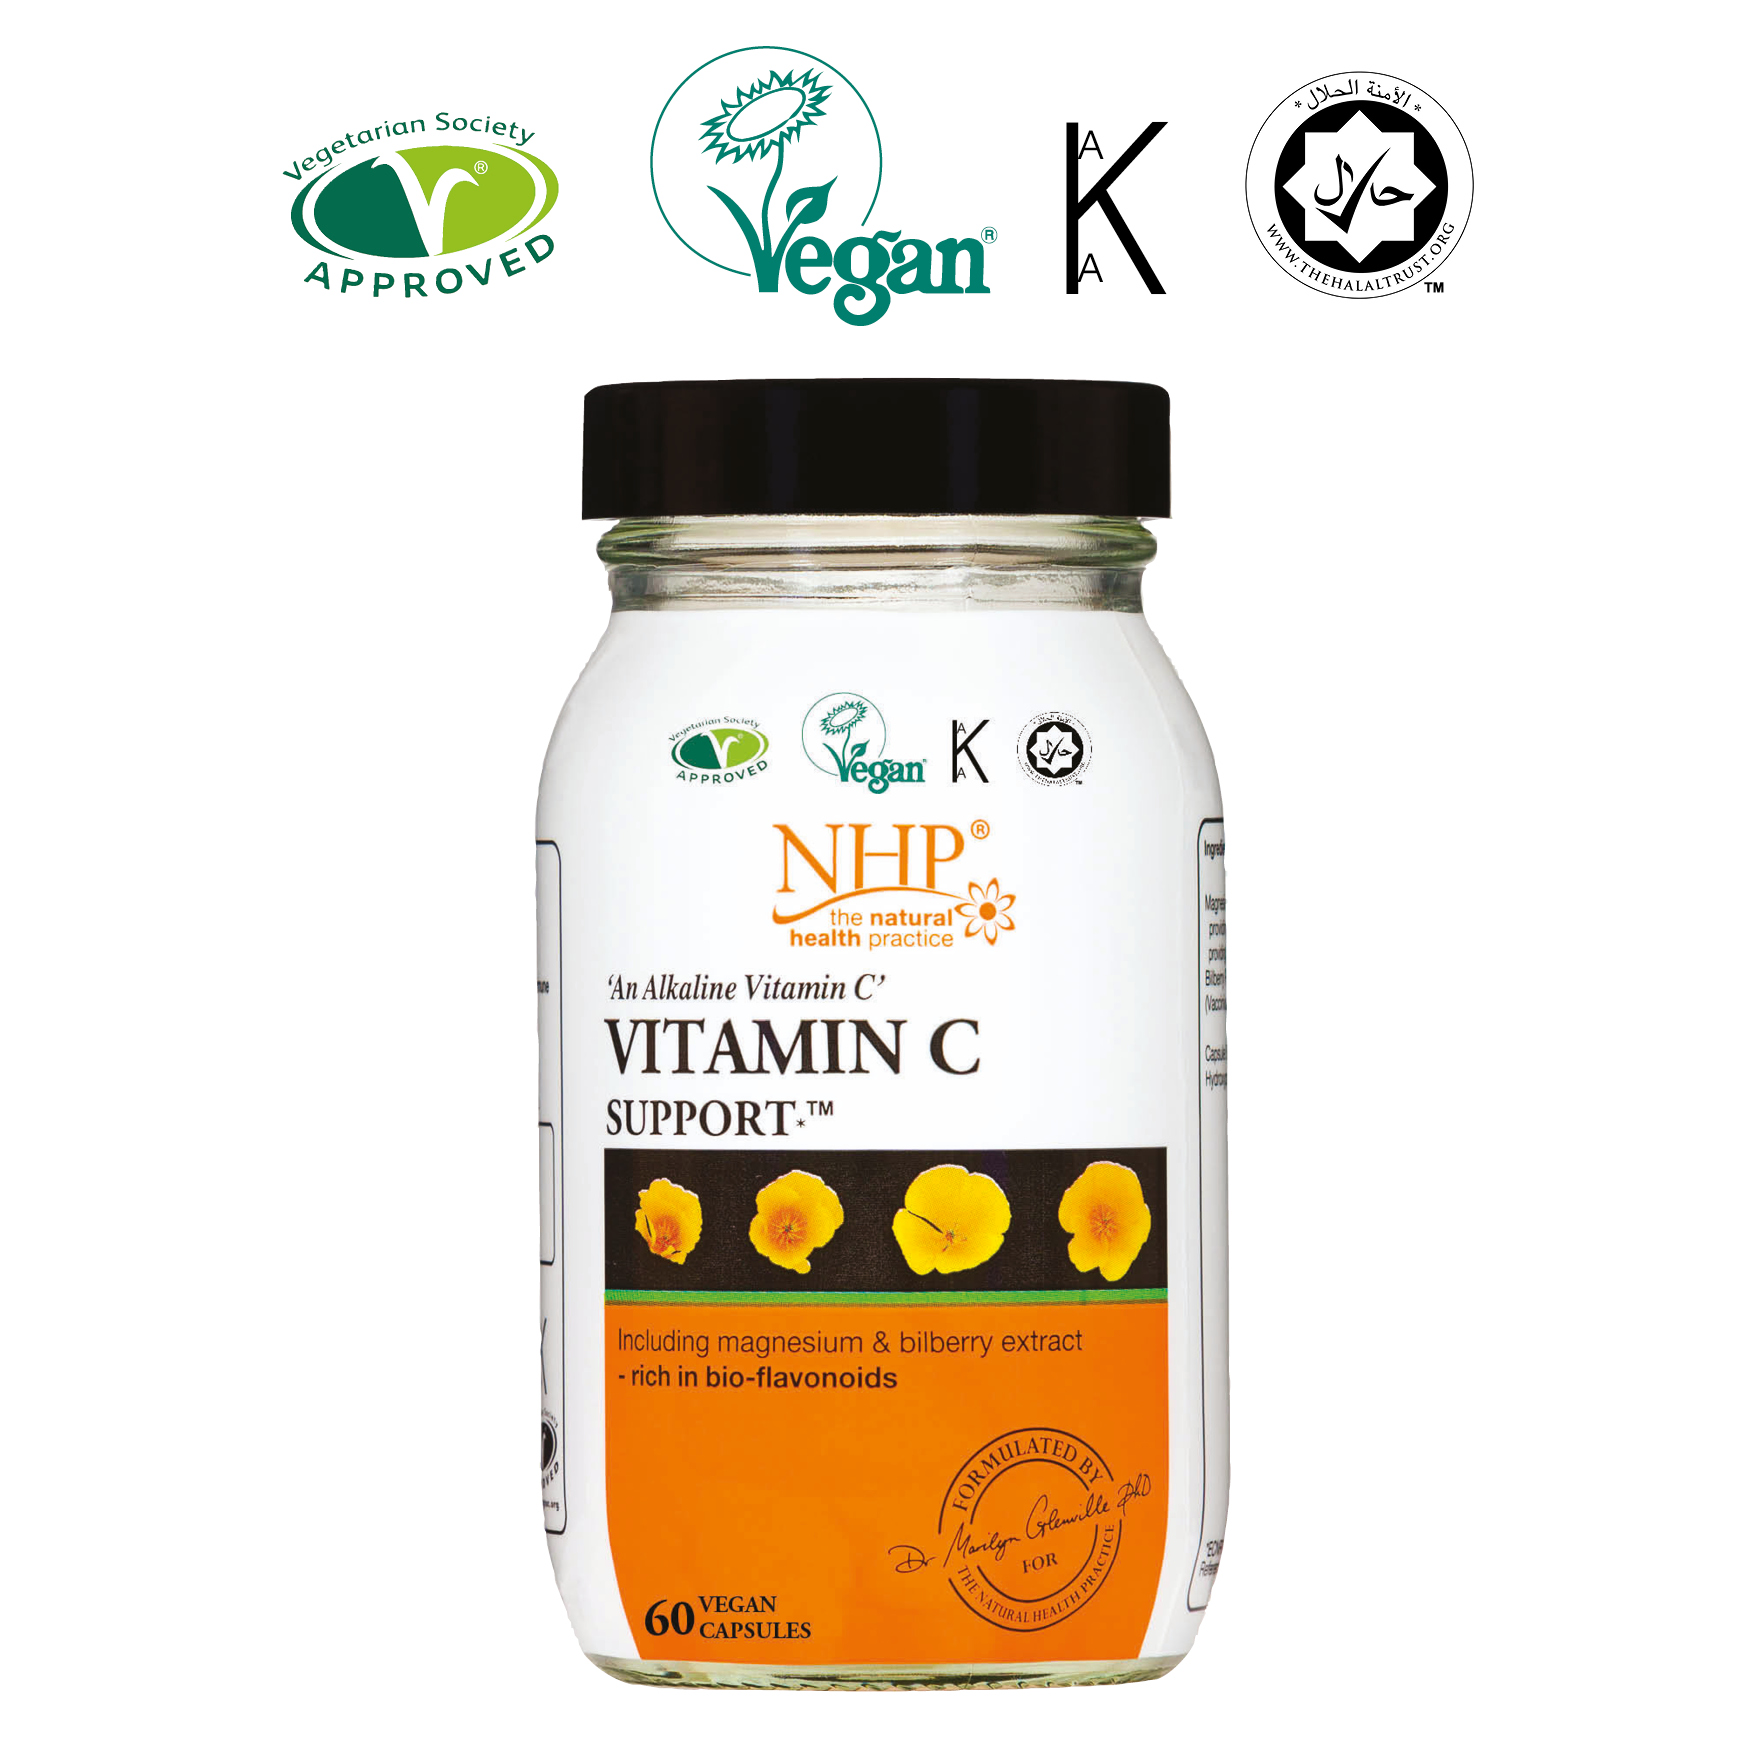 NHP Vitamin C Support